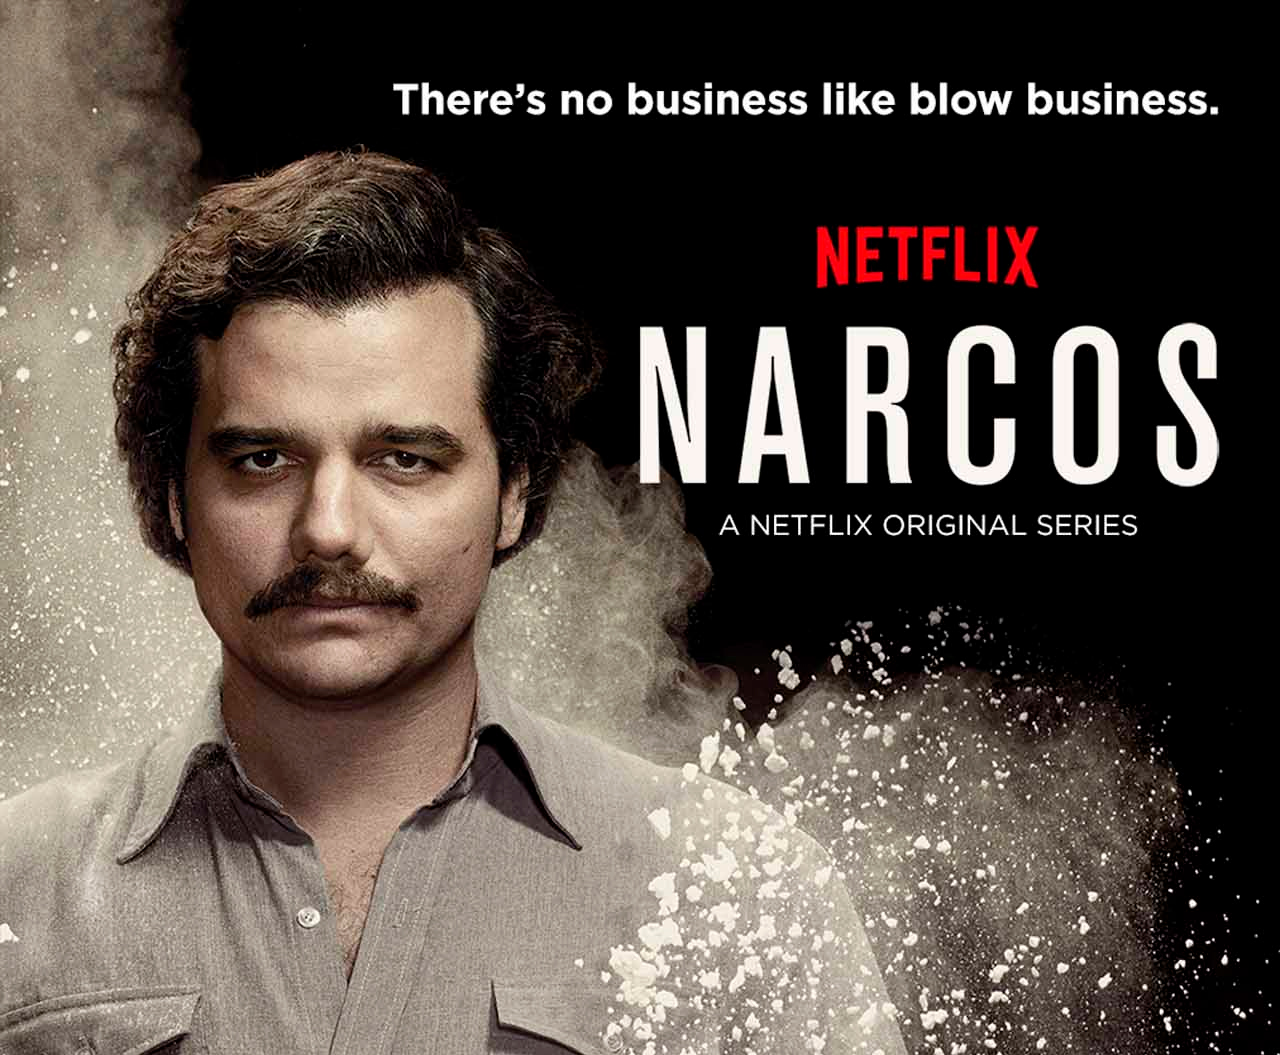 Is the best show on Netflix right now?